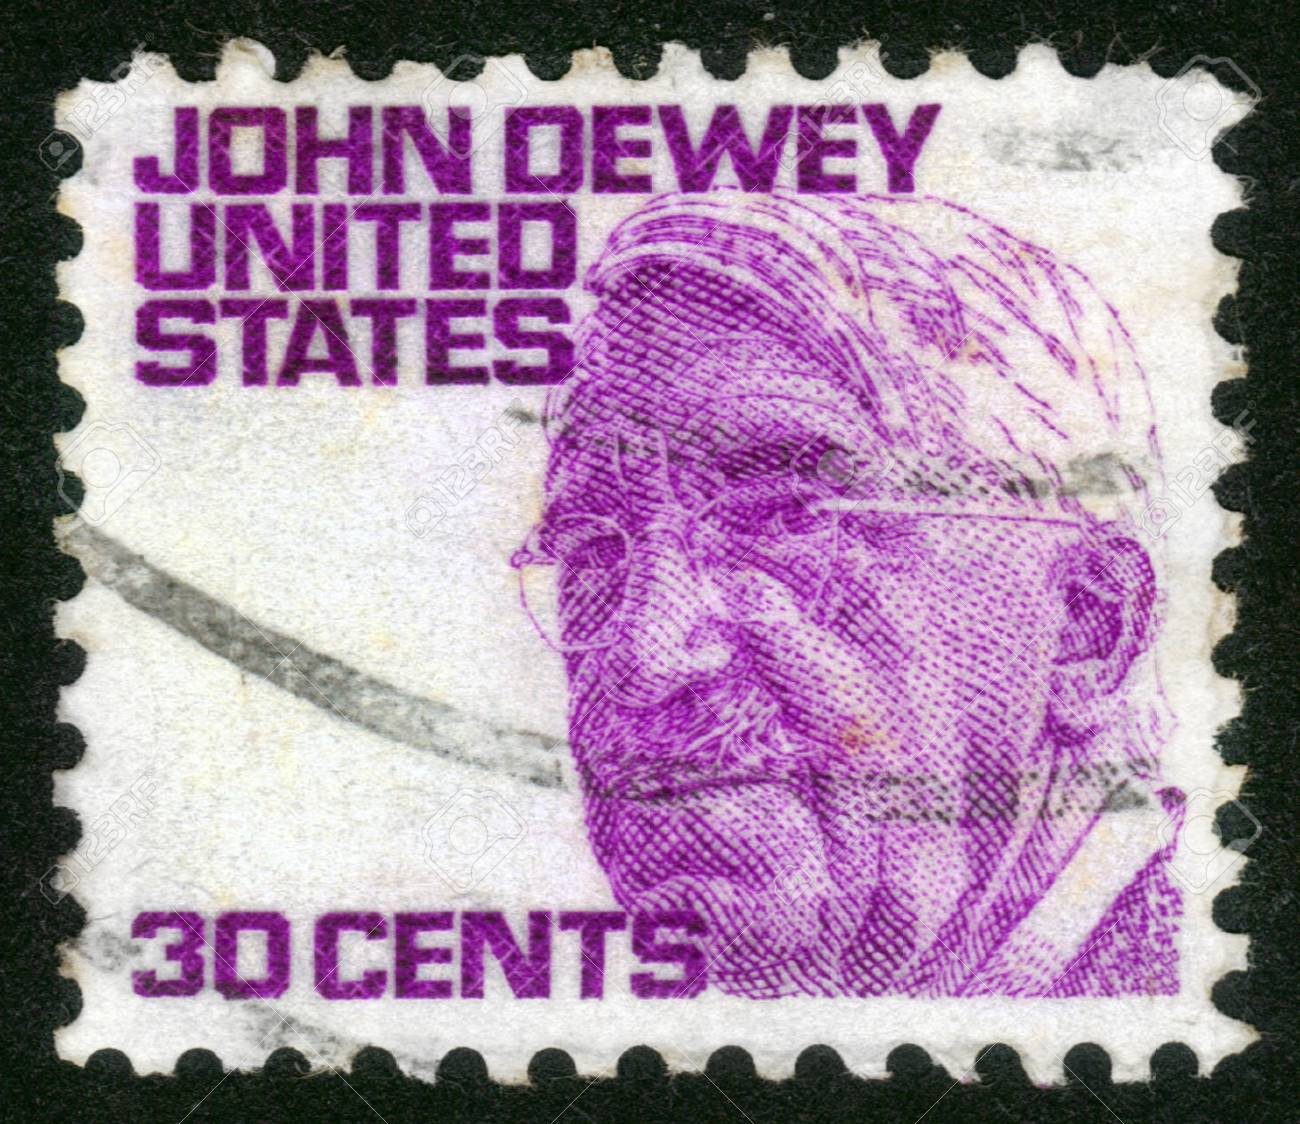 USA - CIRCA 1965: A stamp printed in USA from the